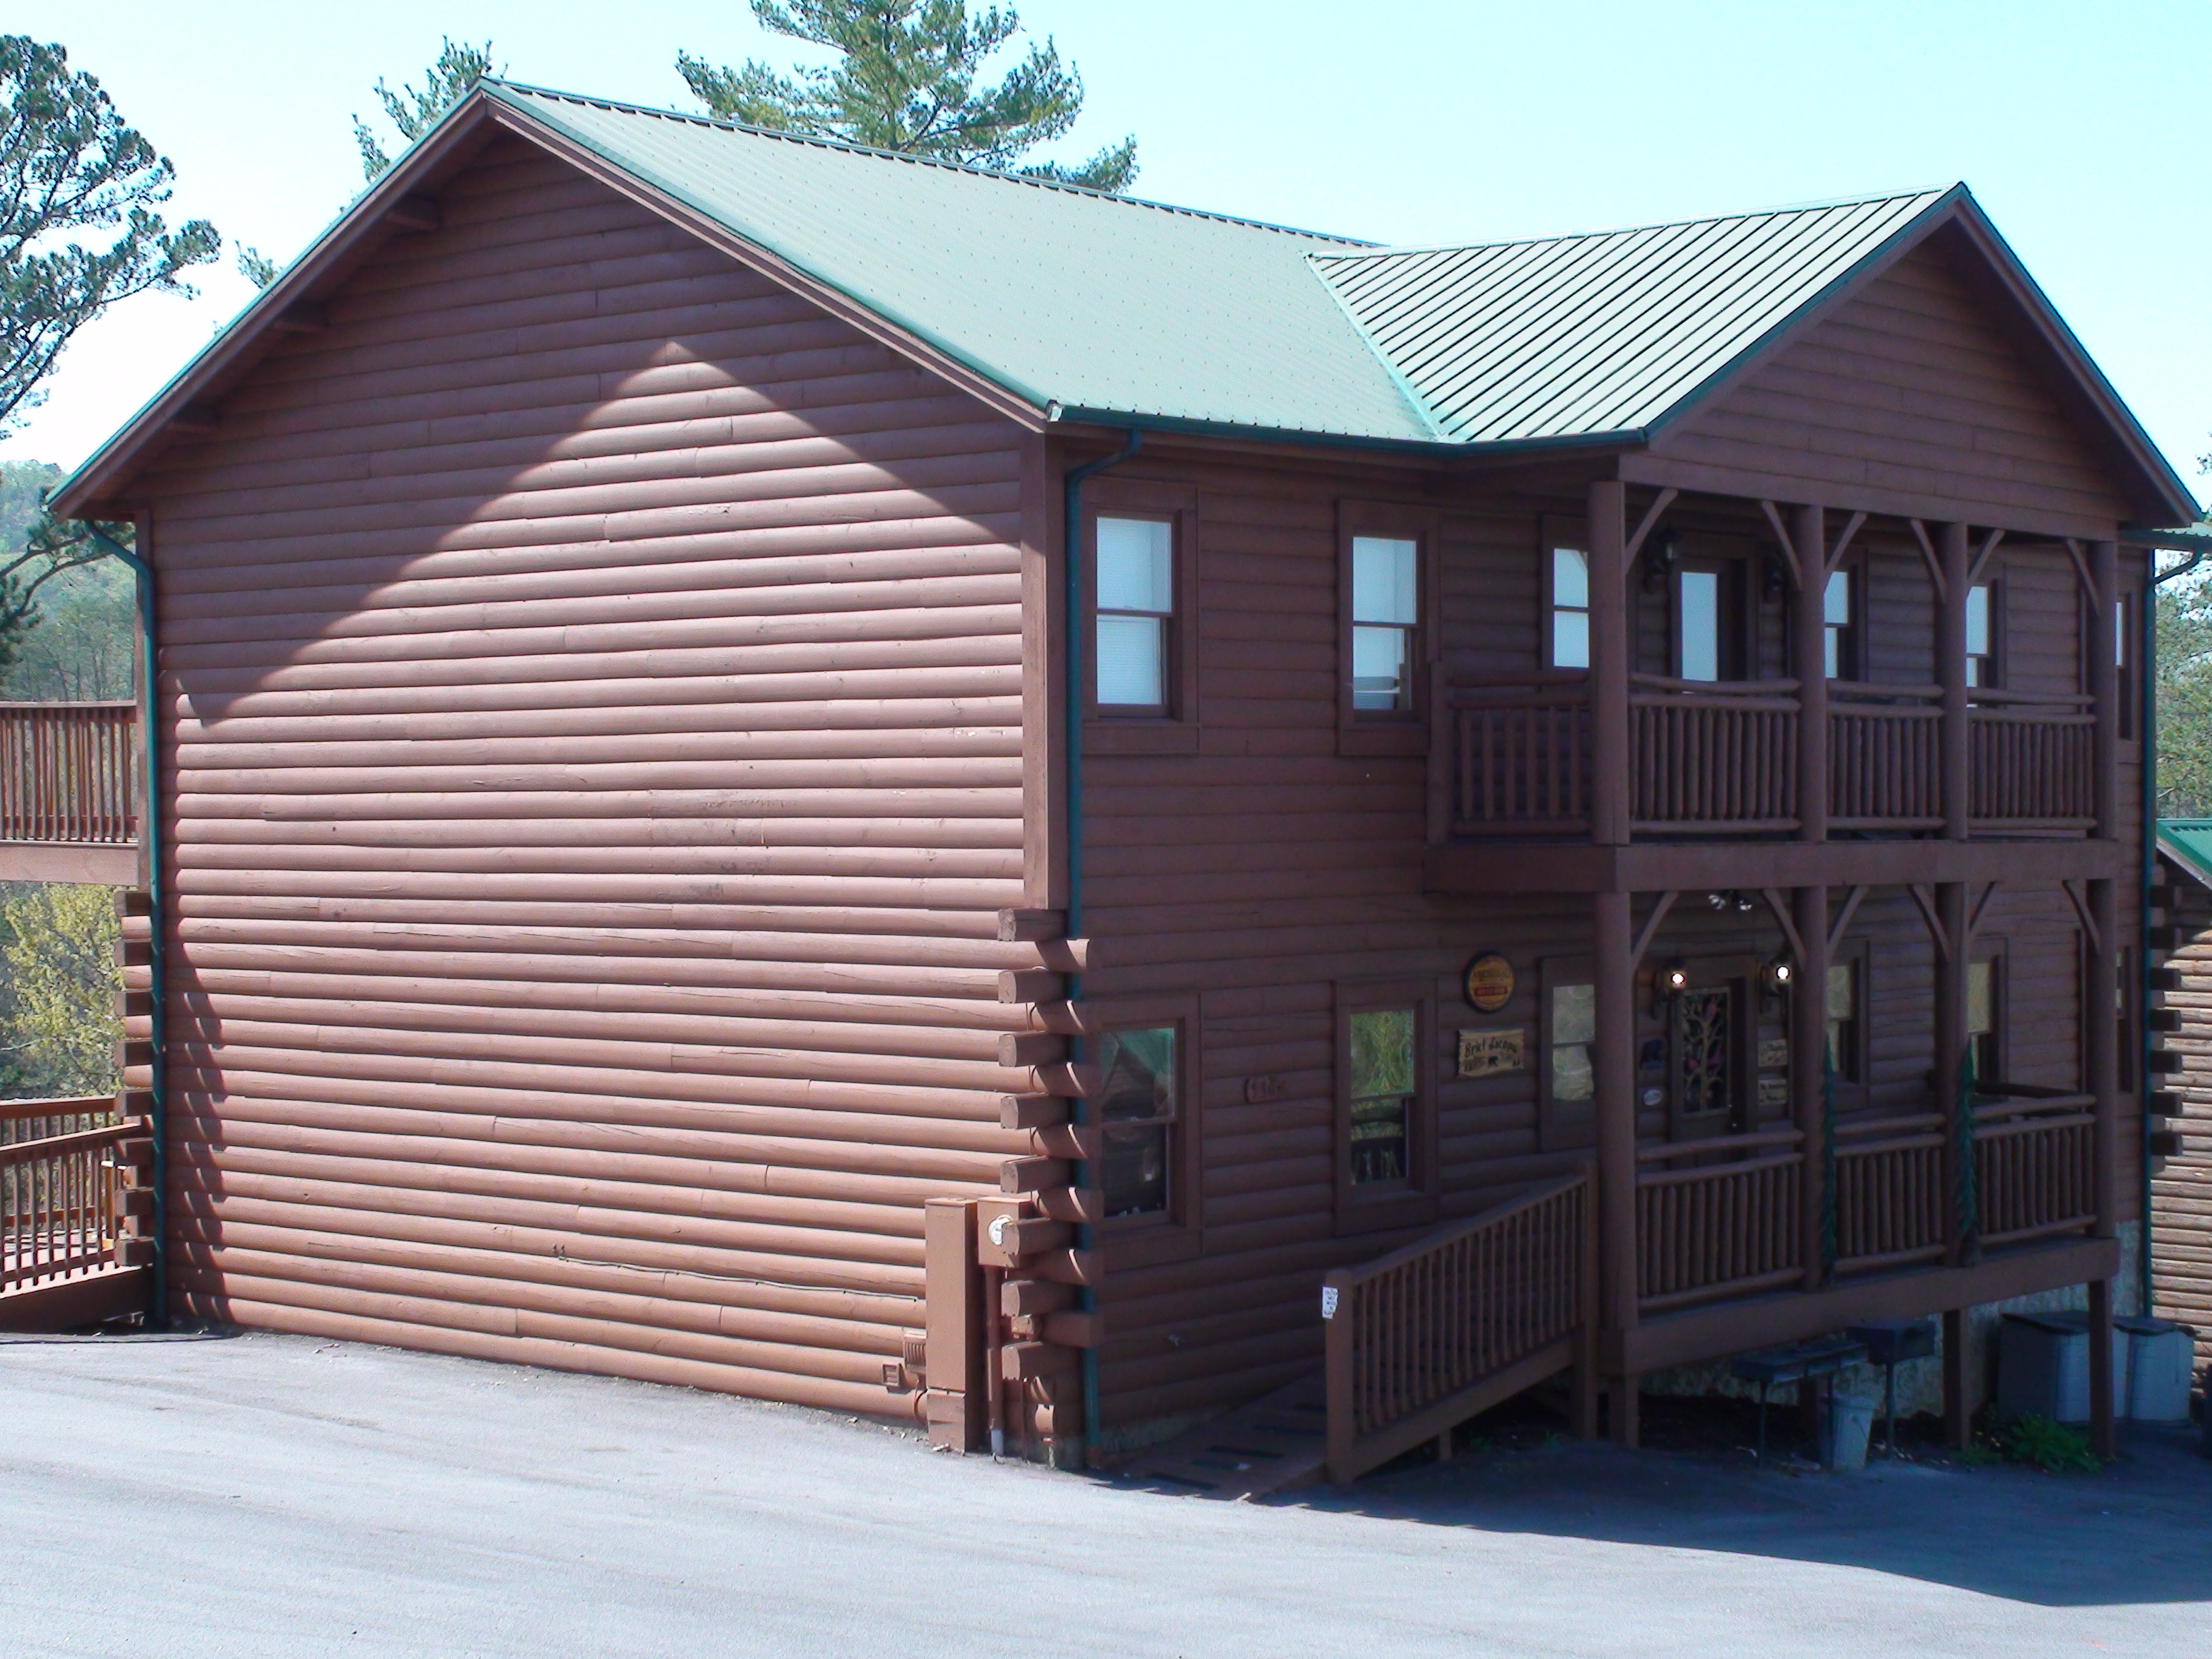 arrowhead cabin rentals in pigeon forge tn 37863